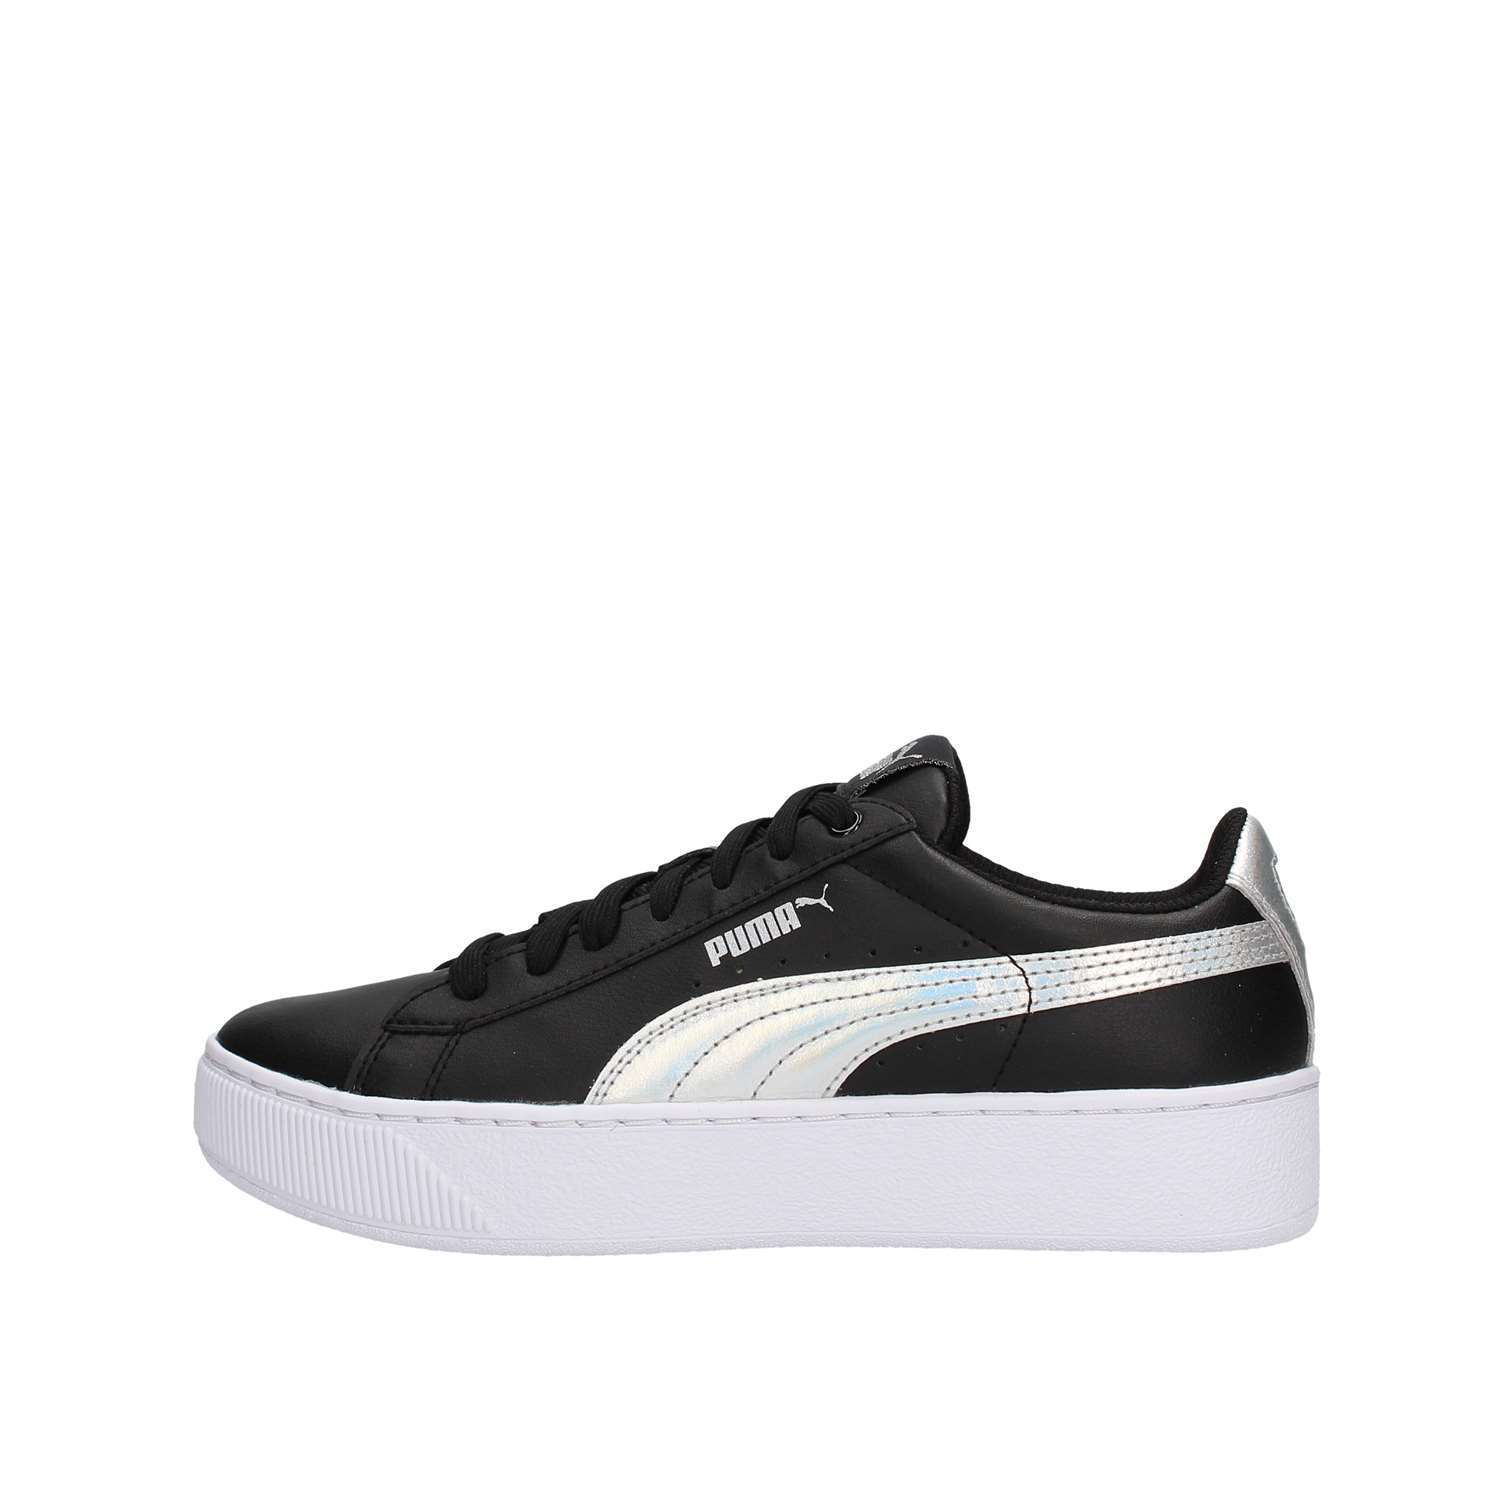 SCARPE SNEAKERS UNISEX PUMA ORIGINALE VIKKY PLATFORM 365629 PELLE SHOES A/I NEW